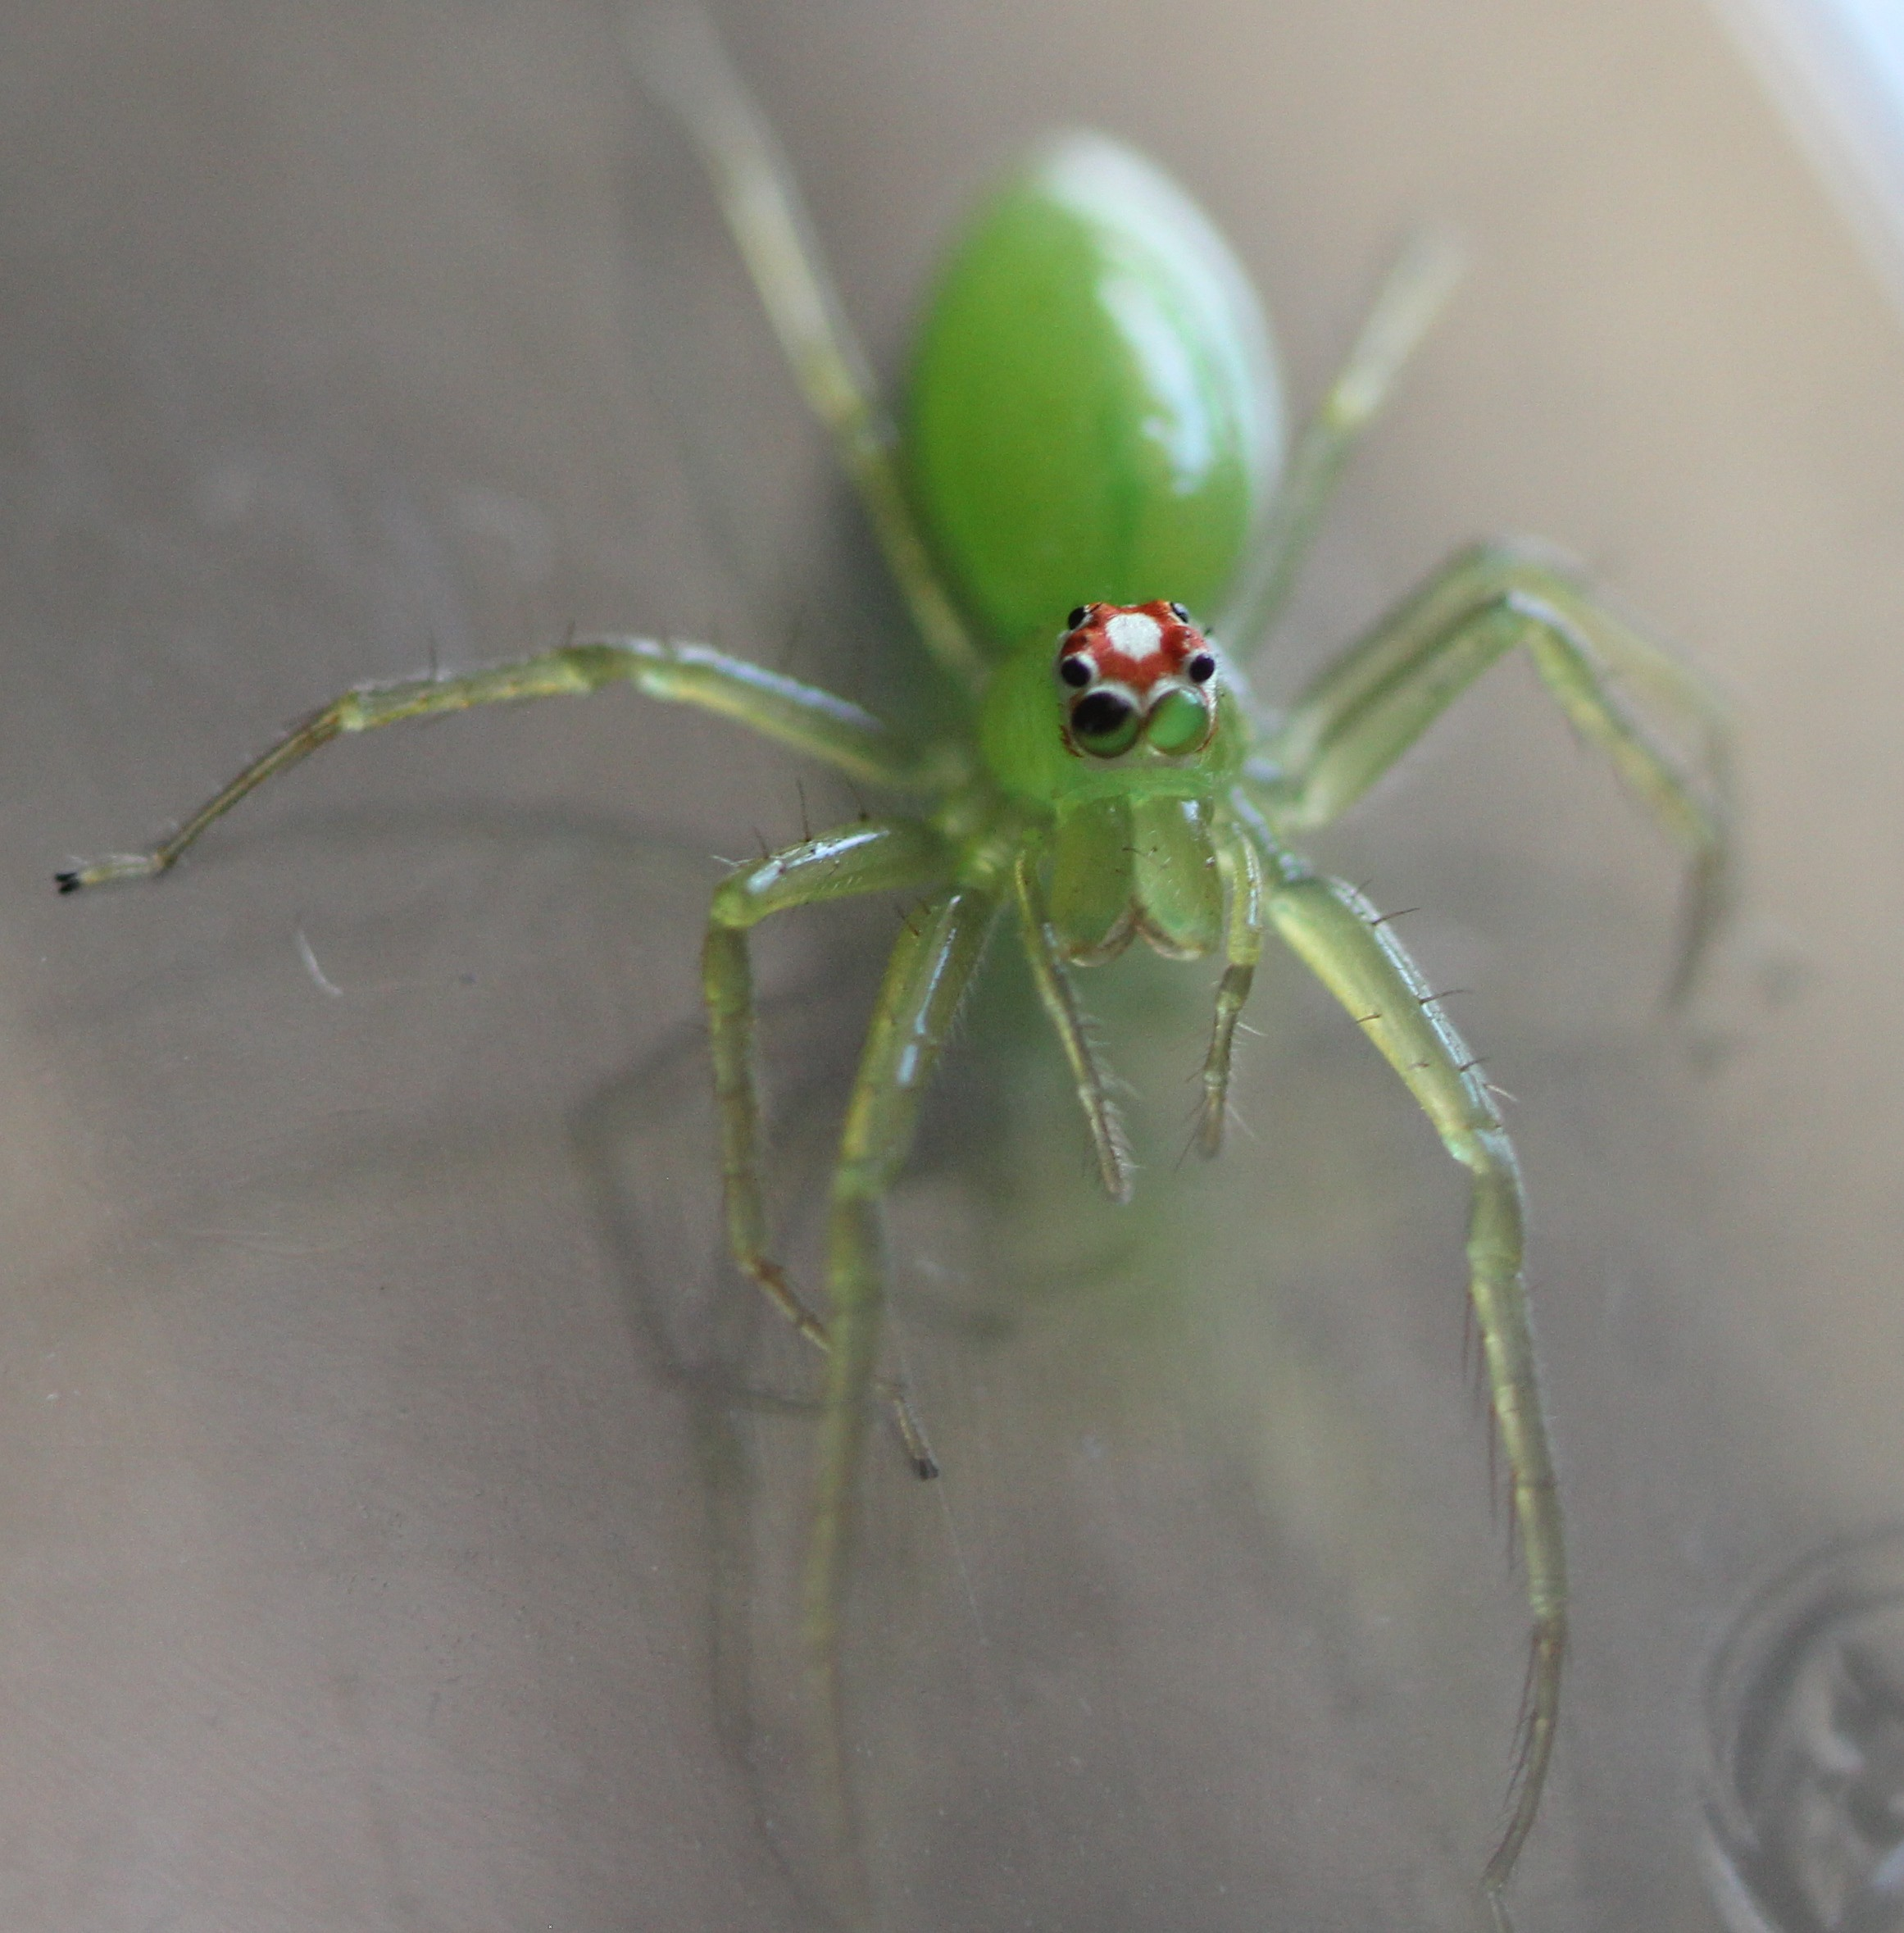 How I ended up with pet jumping spiders - melissa mcewen